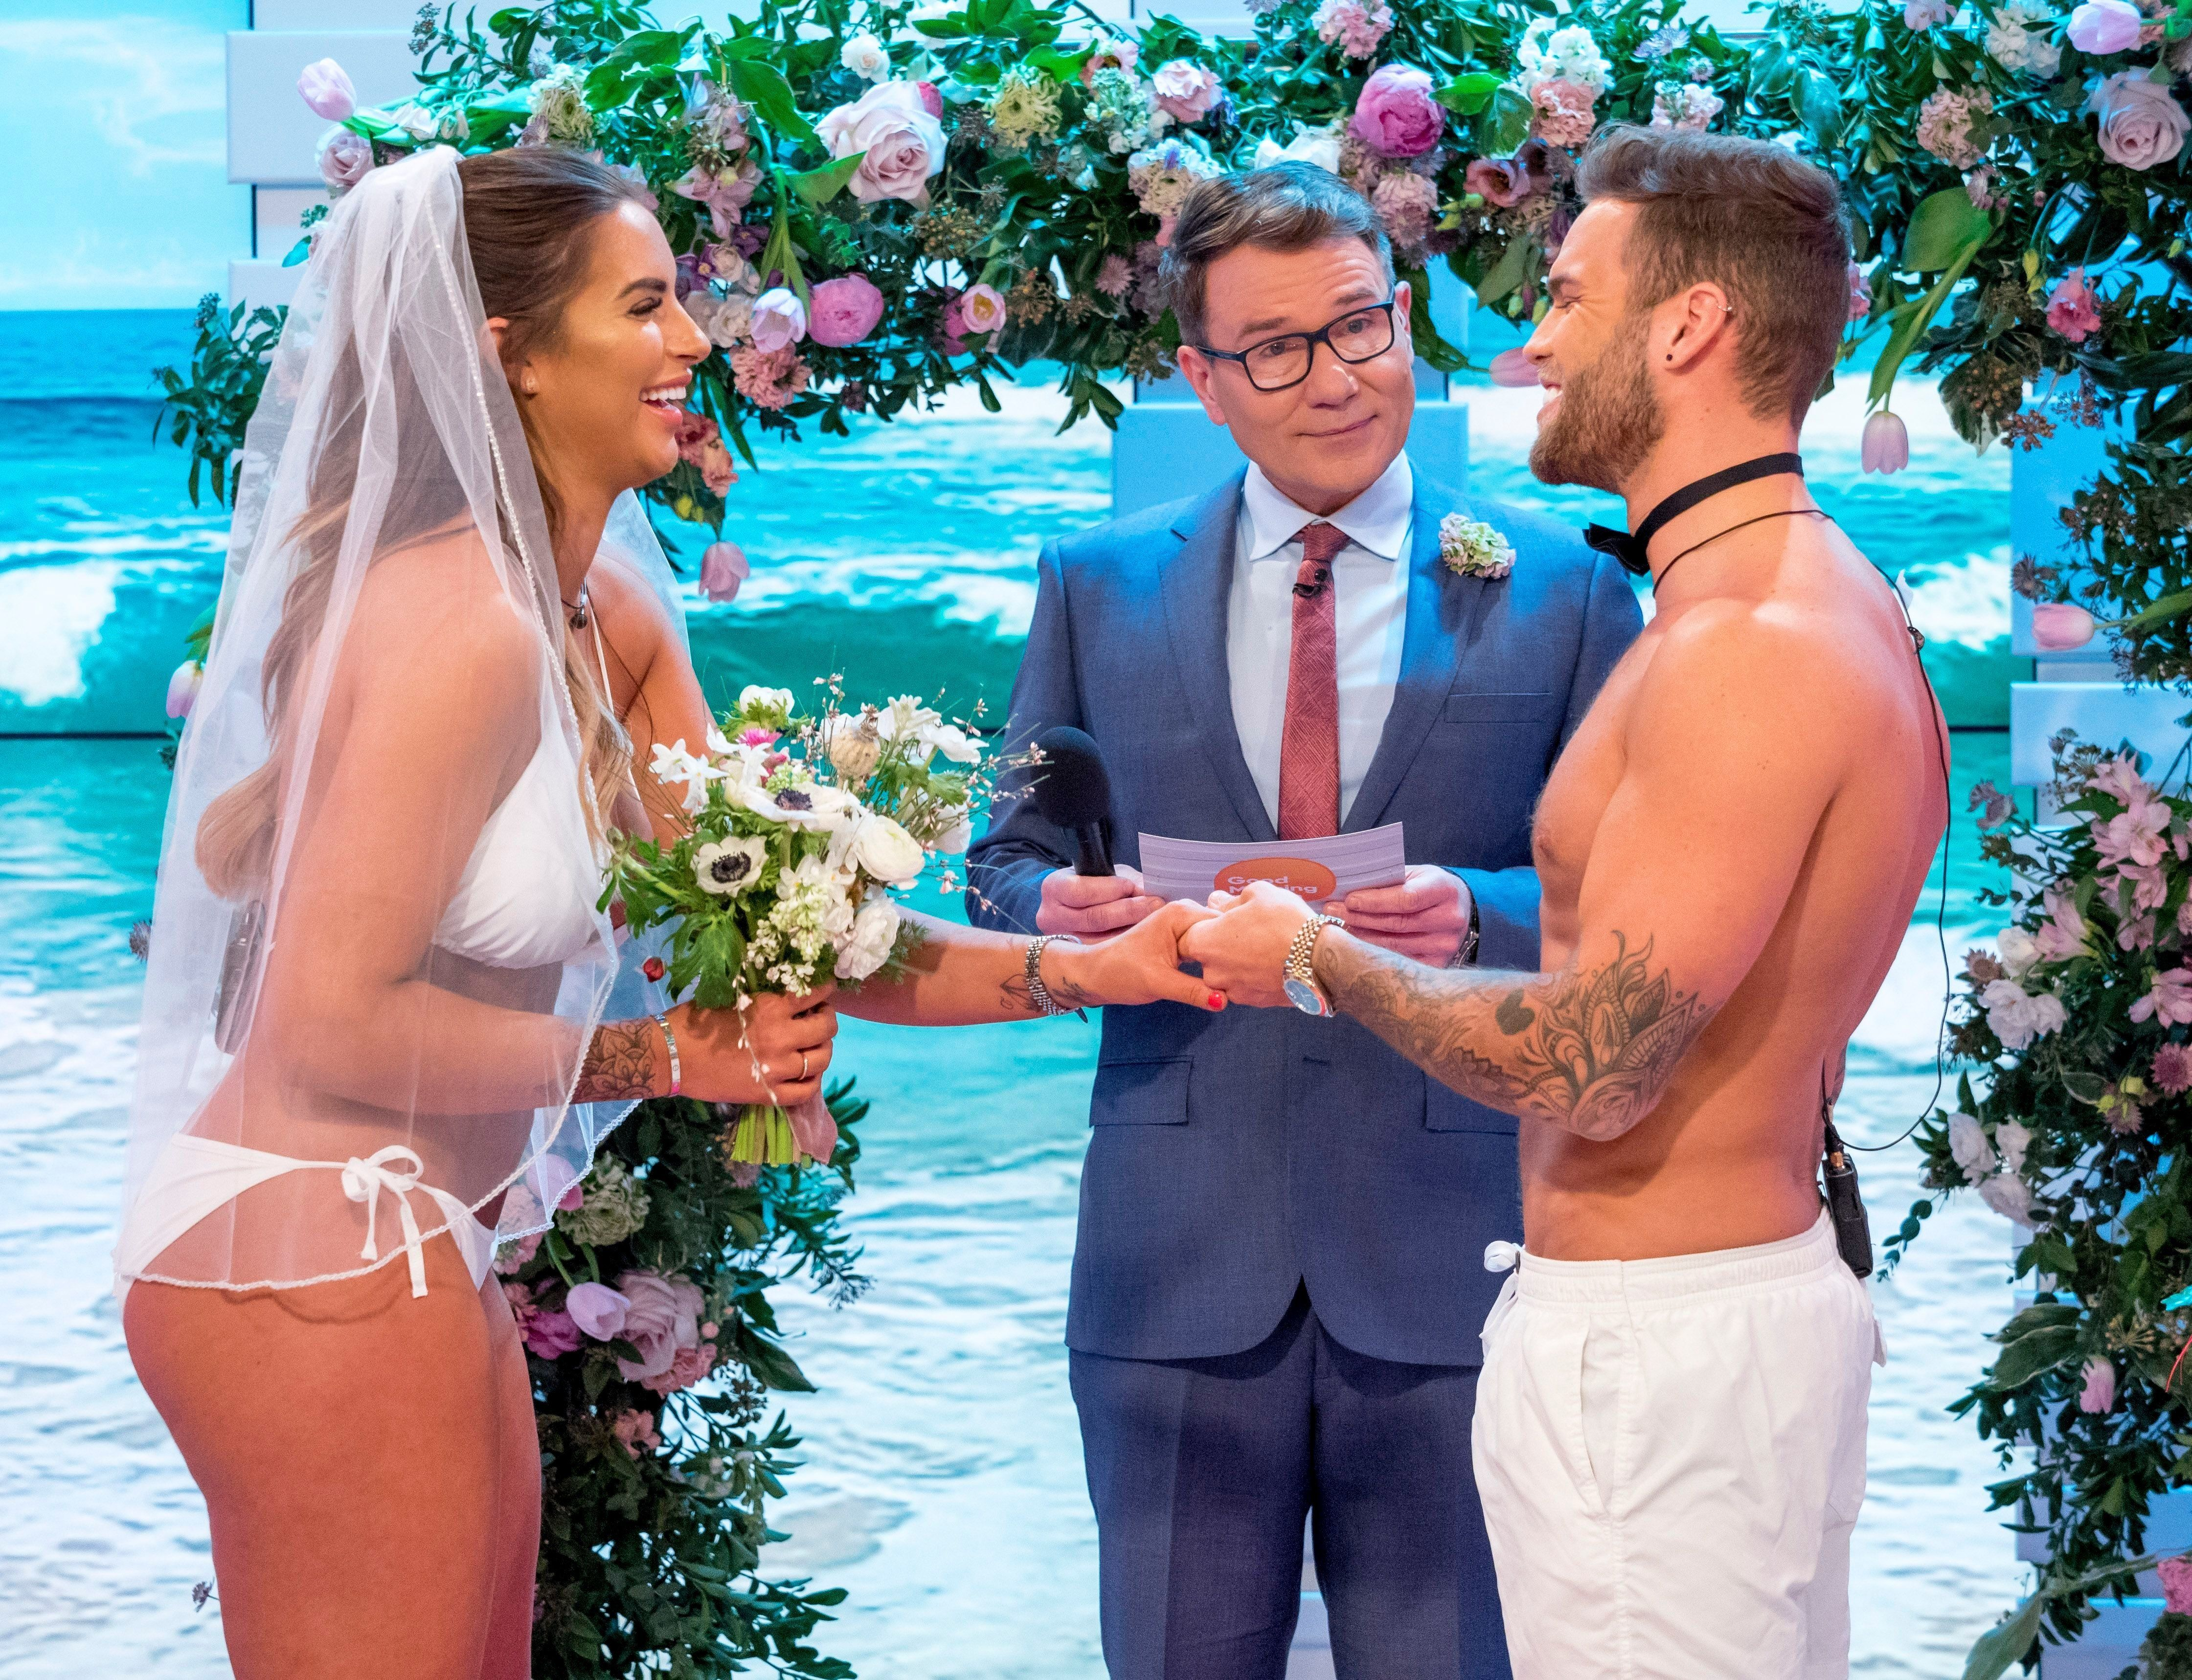 'Good Morning Britain' Viewers Can't Help But Cringe As Love Island's Jess And Dom Get 'Married' Live On